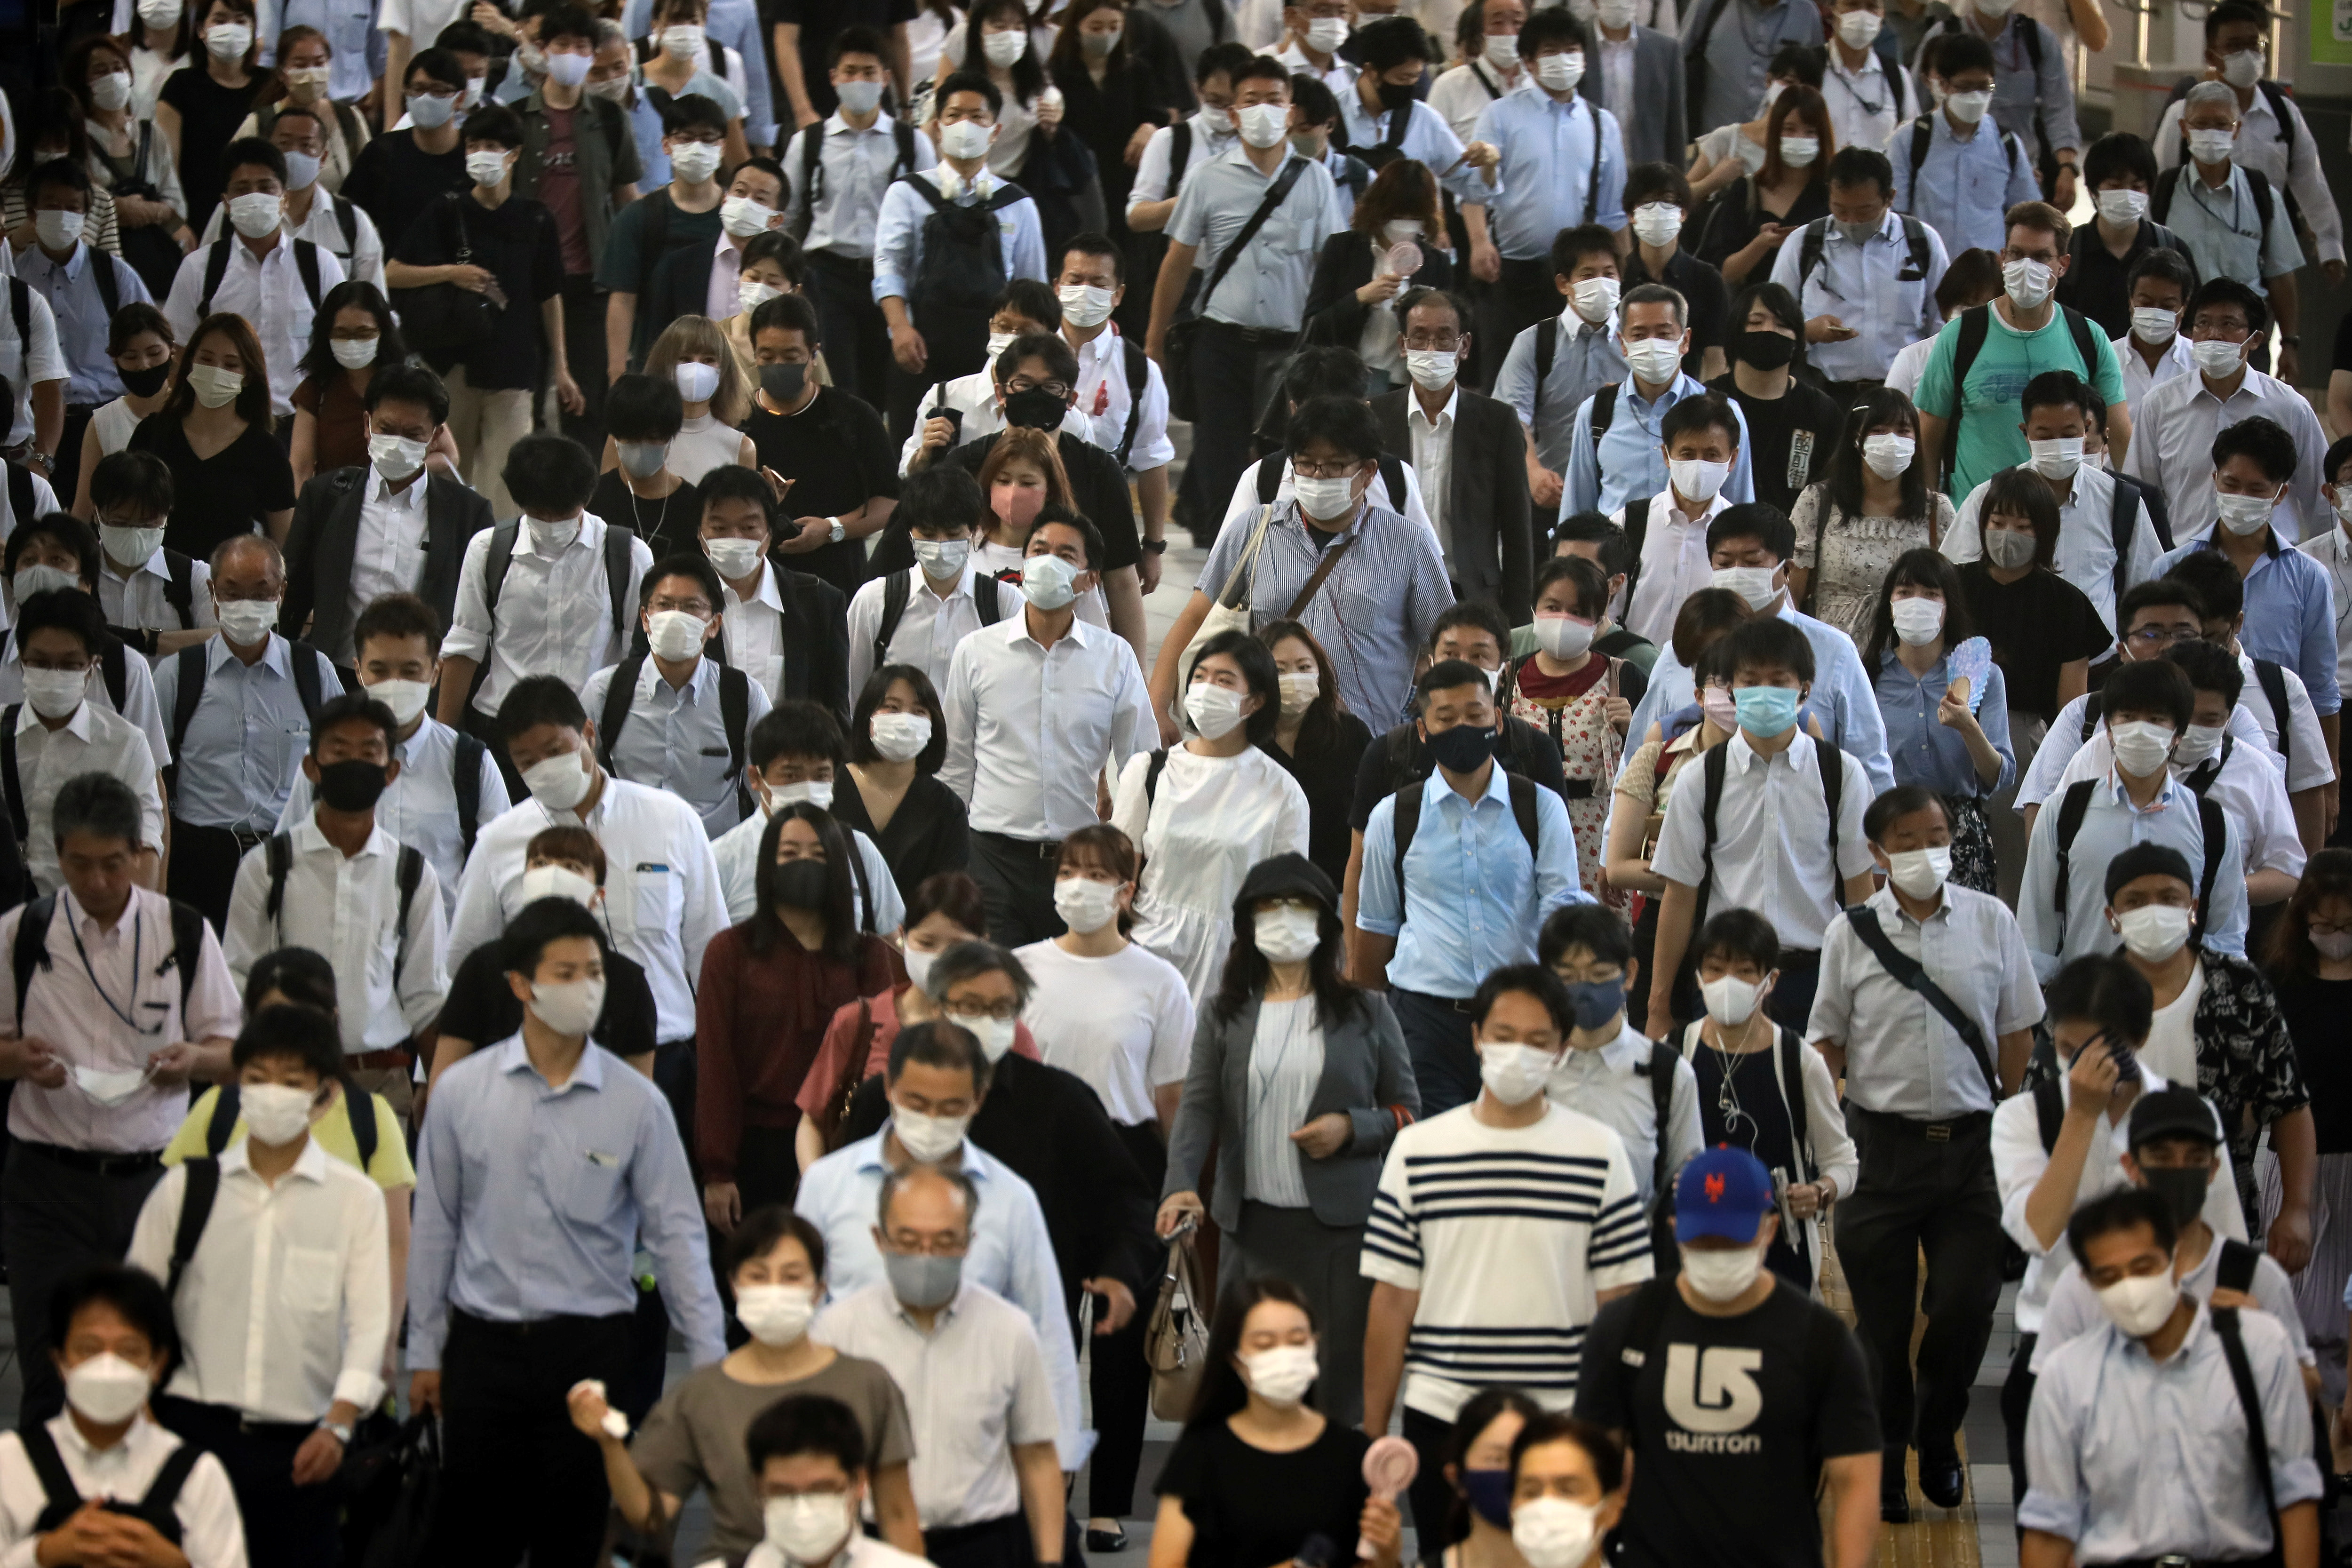 Commuters wearing face masks arrive at Shinagawa Station at the start of the working day amid the coronavirus disease (COVID-19) outbreak, in Tokyo, Japan, August 2, 2021 .REUTERS/Kevin Coombs